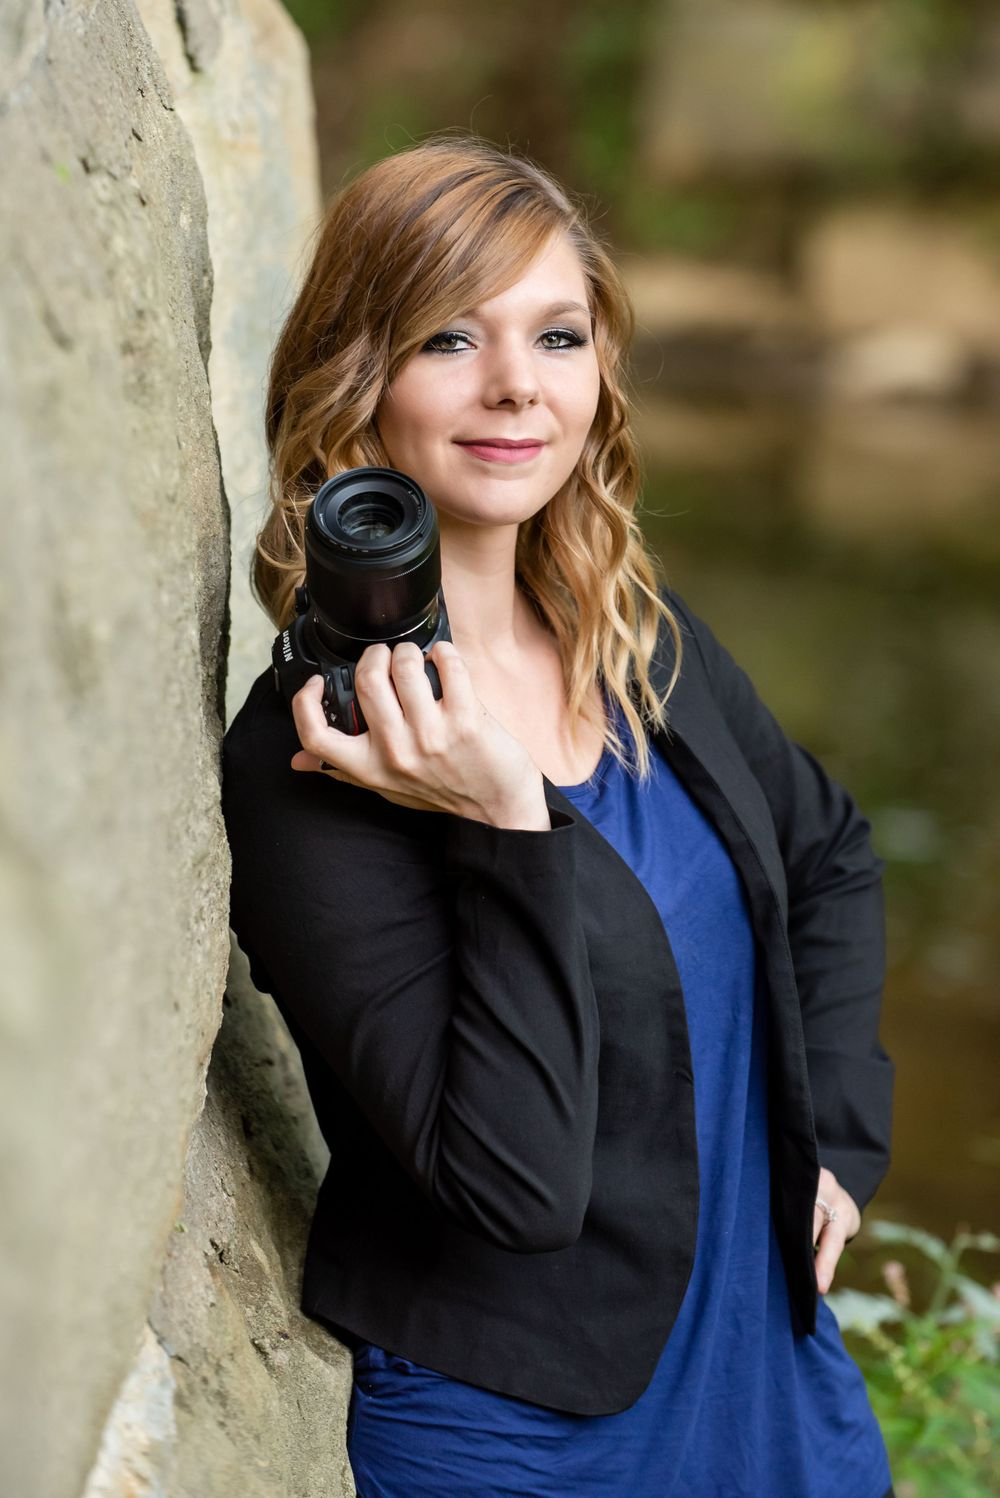 Portraits by Athena, business picture with her camera